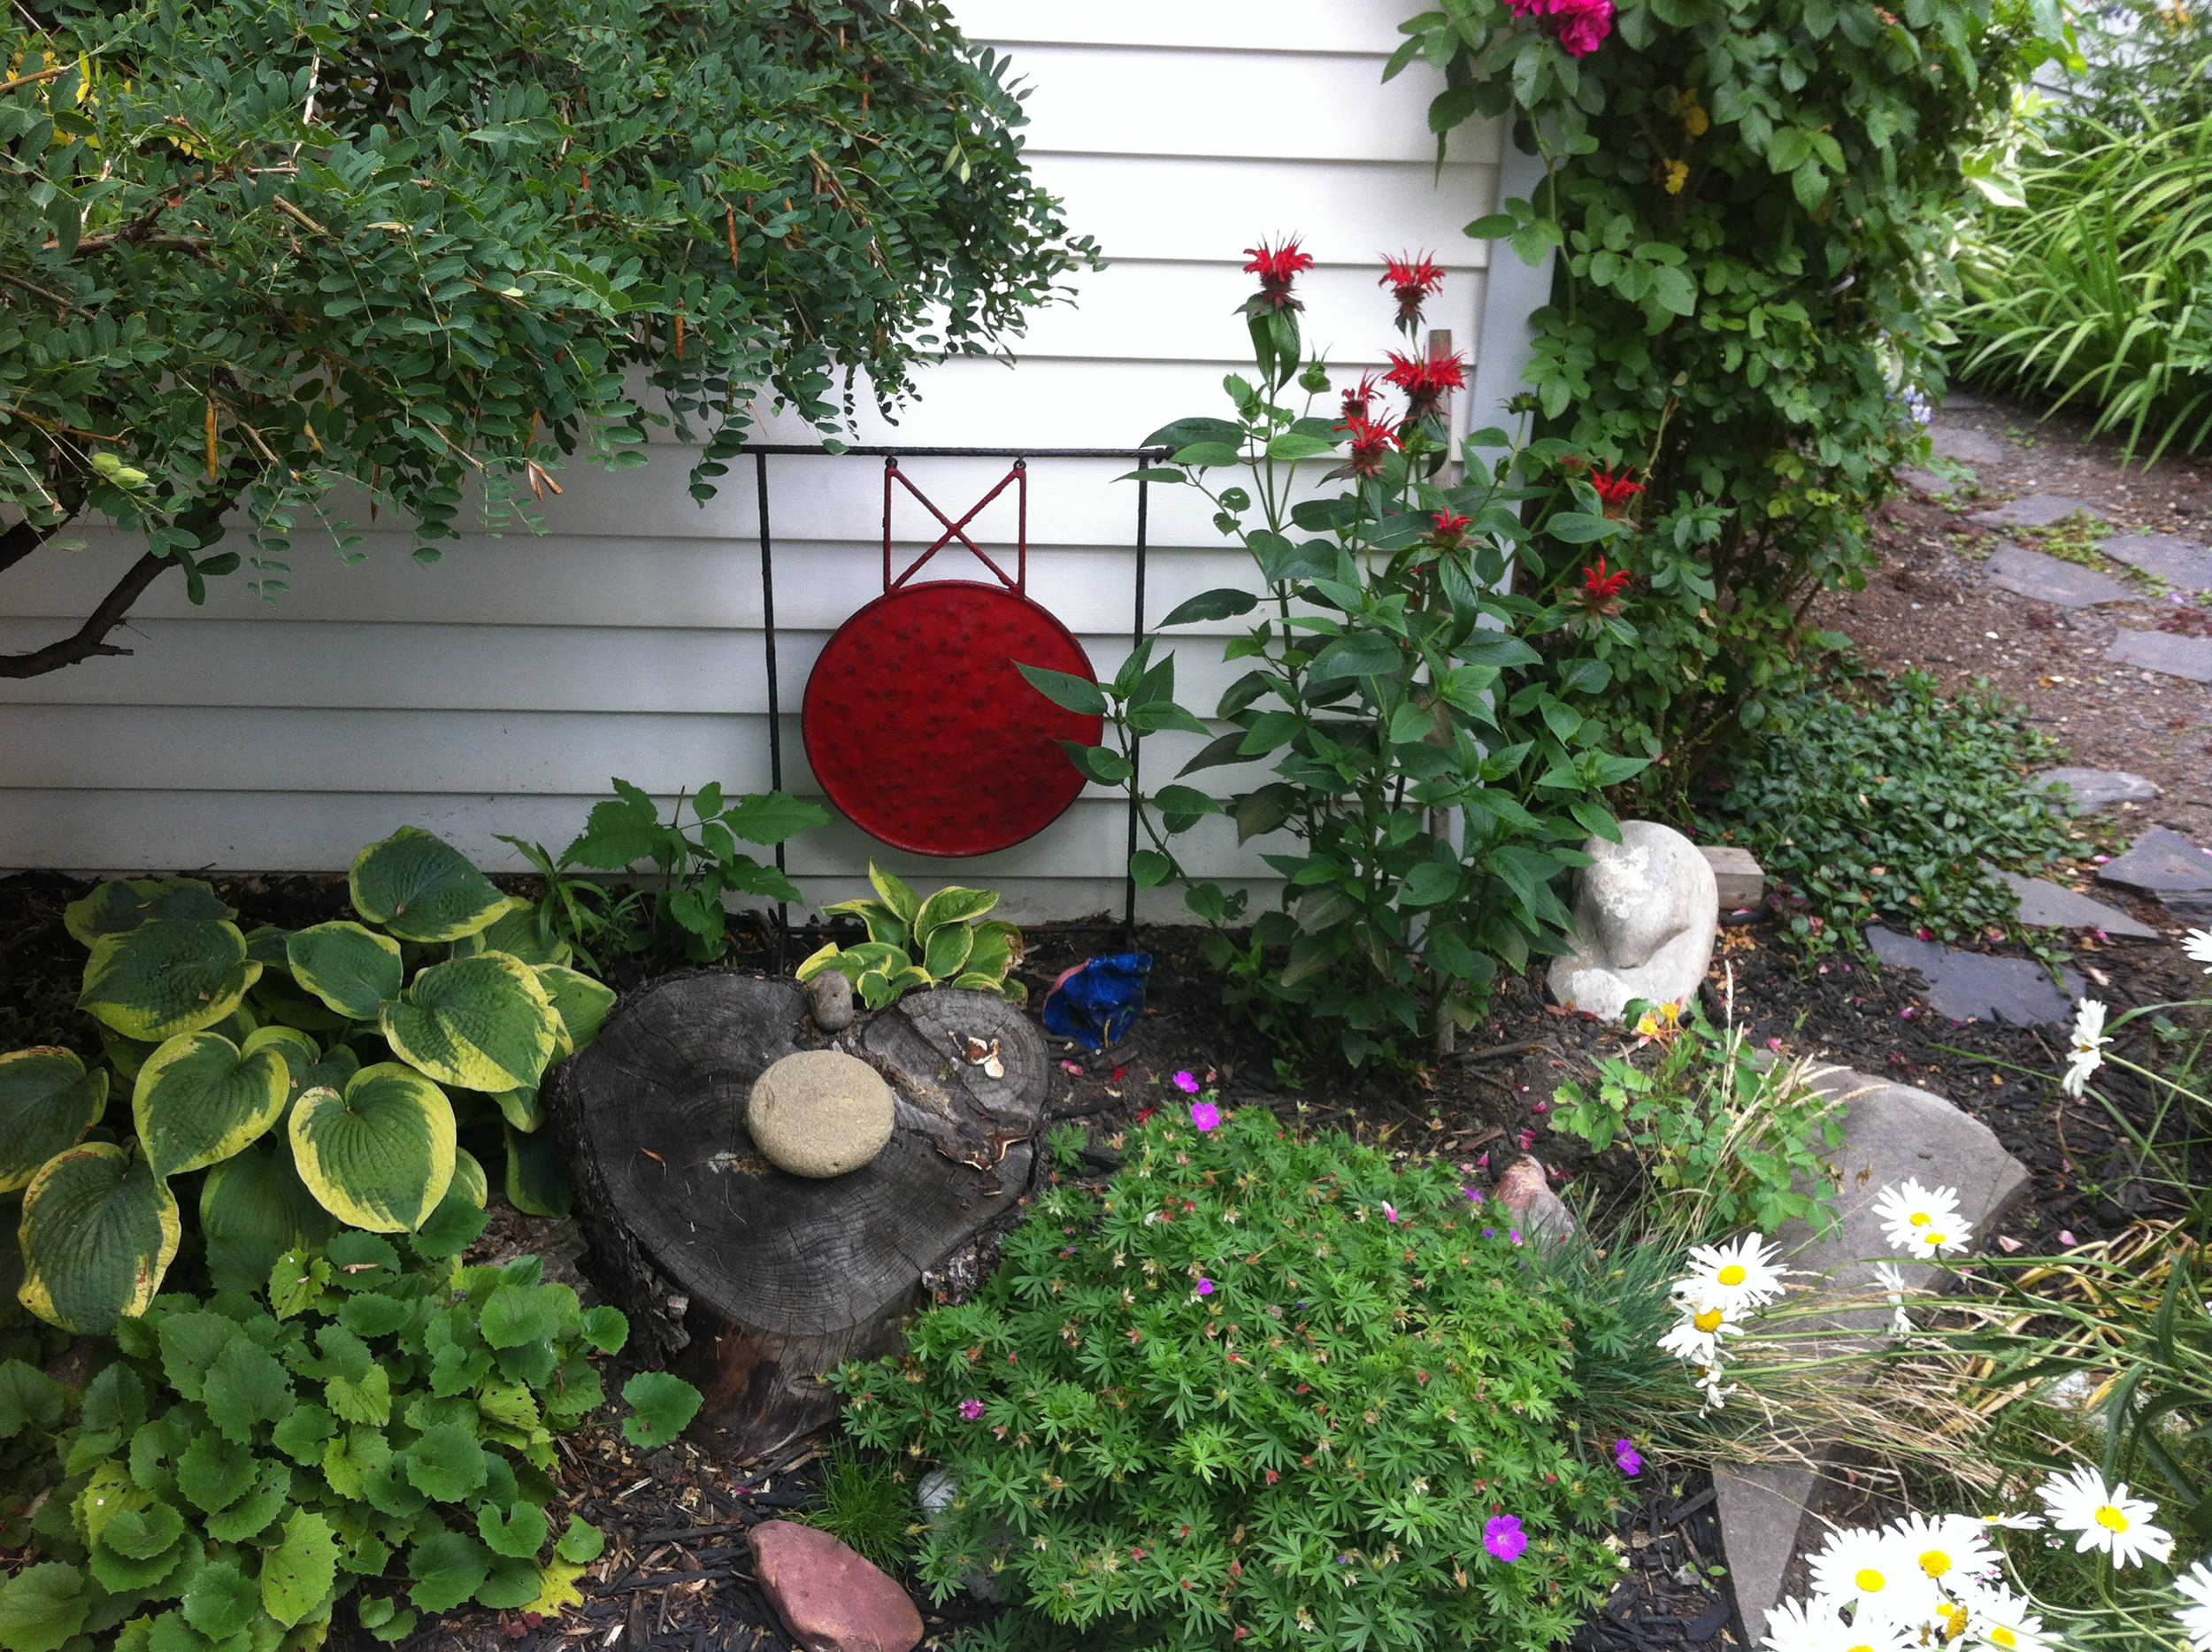 The gong acquired at Bazar Barbara's in our garden.